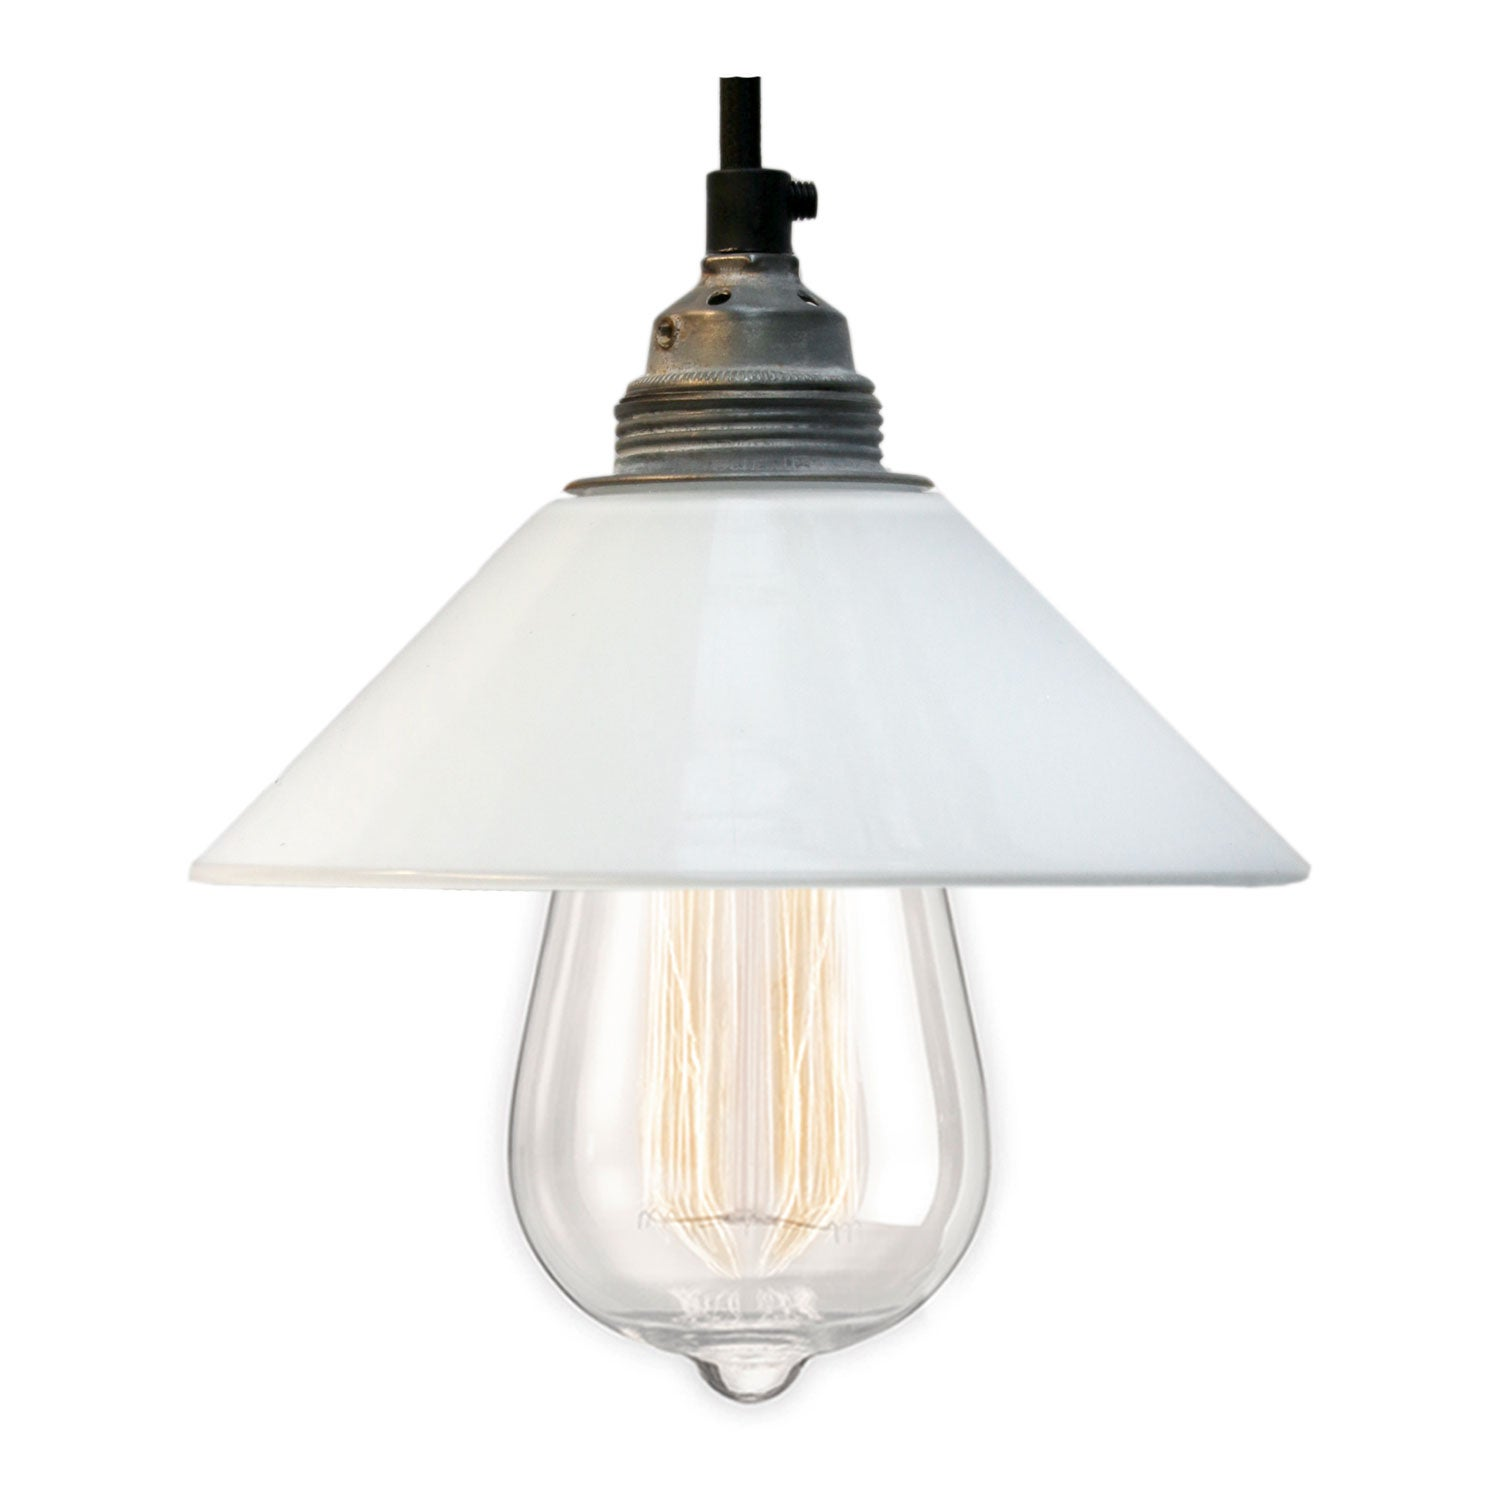 White French Opaline Glass Shades Pendant Lights